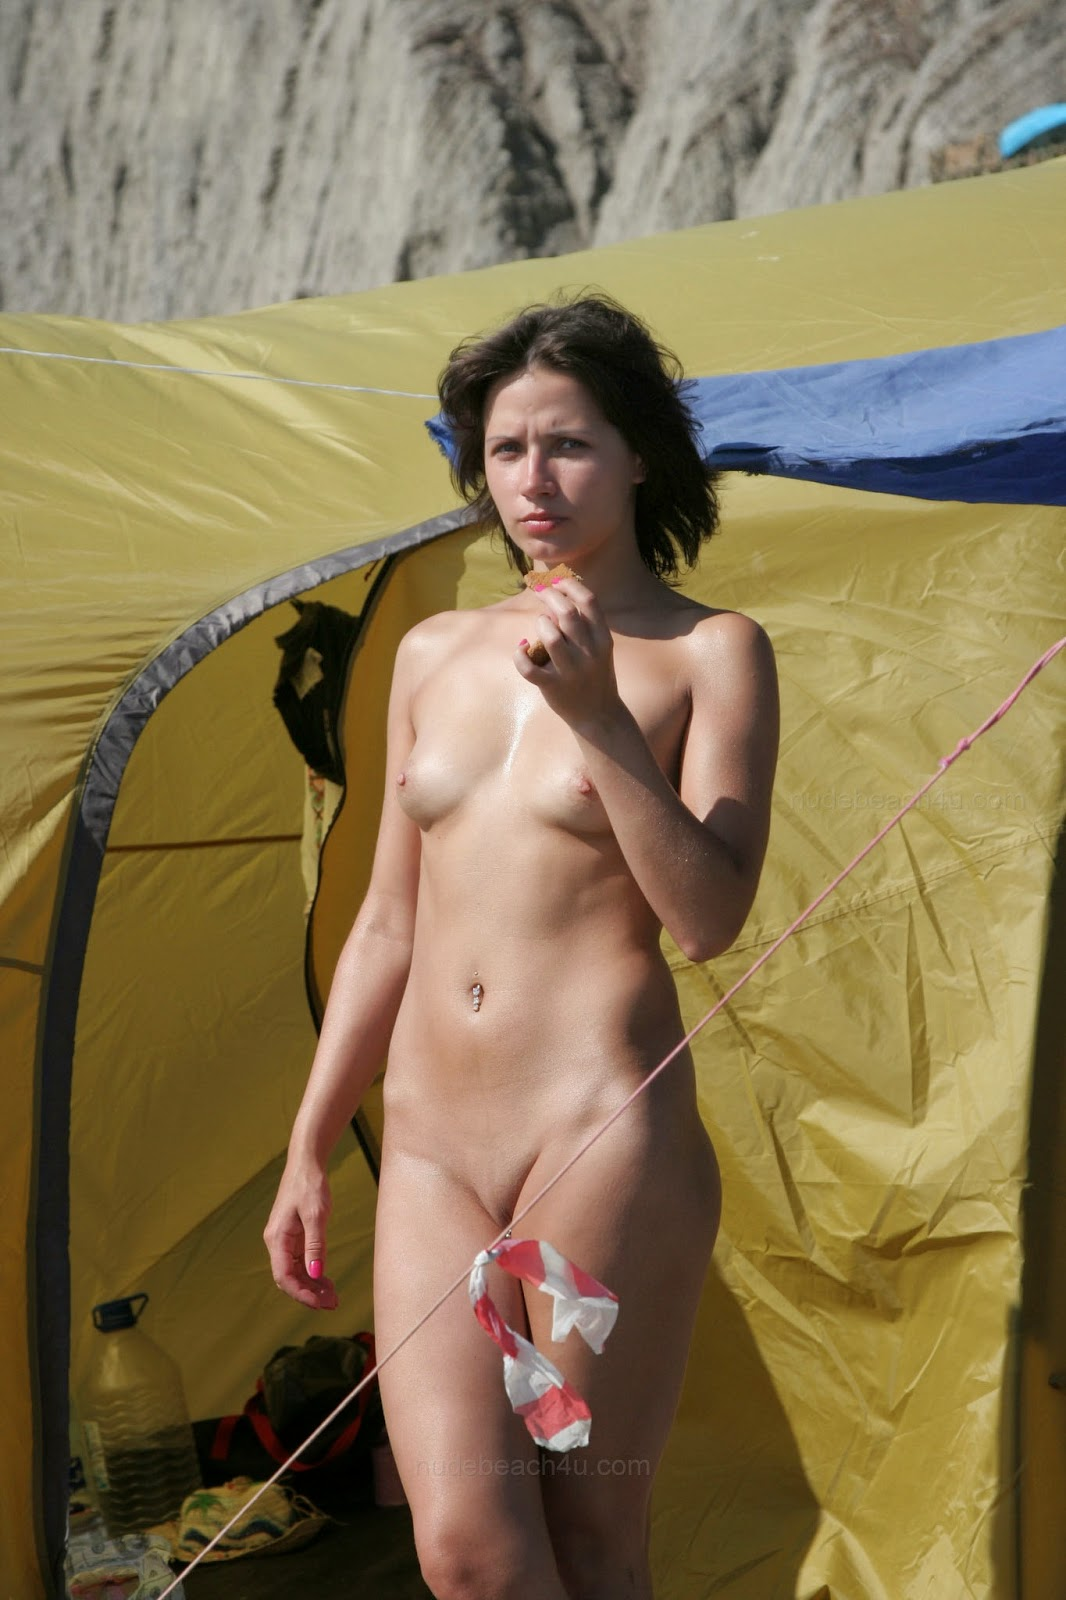 Sorry, that Nude crimea girl consider